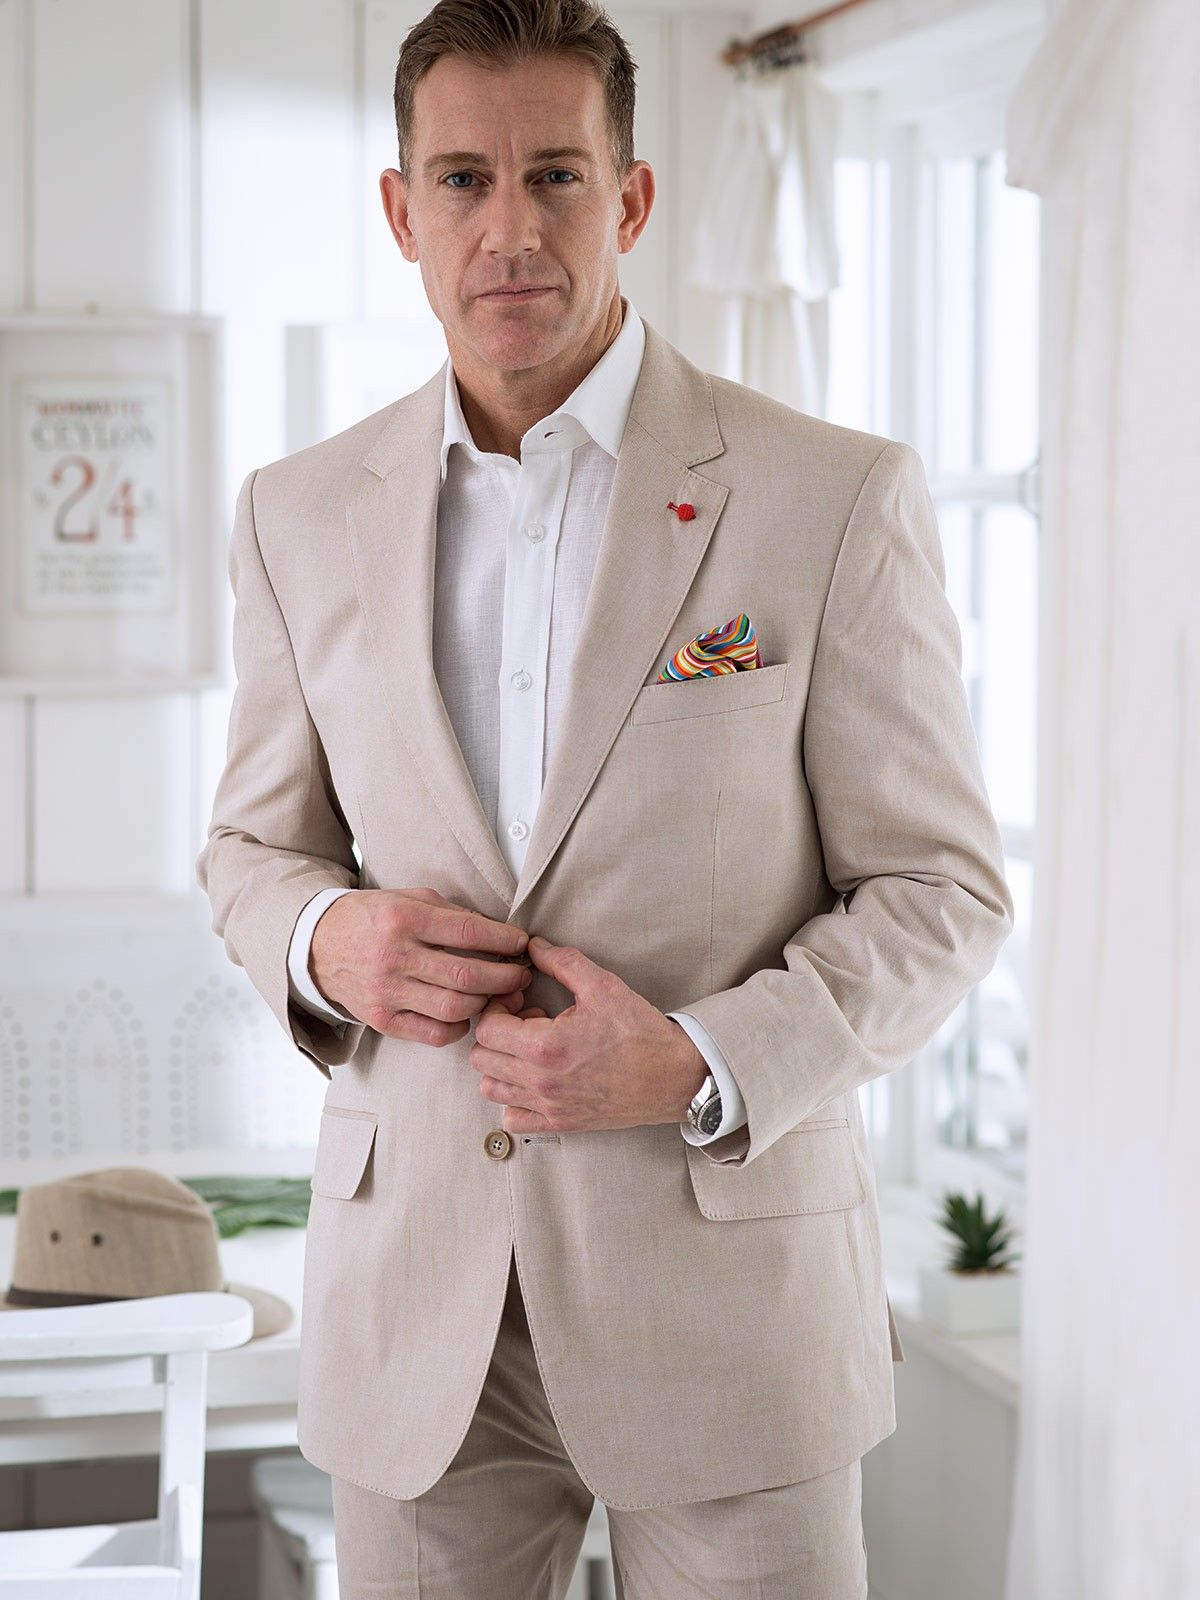 09ffa43440a SUMMER SUIT JACKET (SAND) - As light as linen but with sharper lines for a  smarter finish. Made from 100% cotton and fully lined with colour matched  satin.